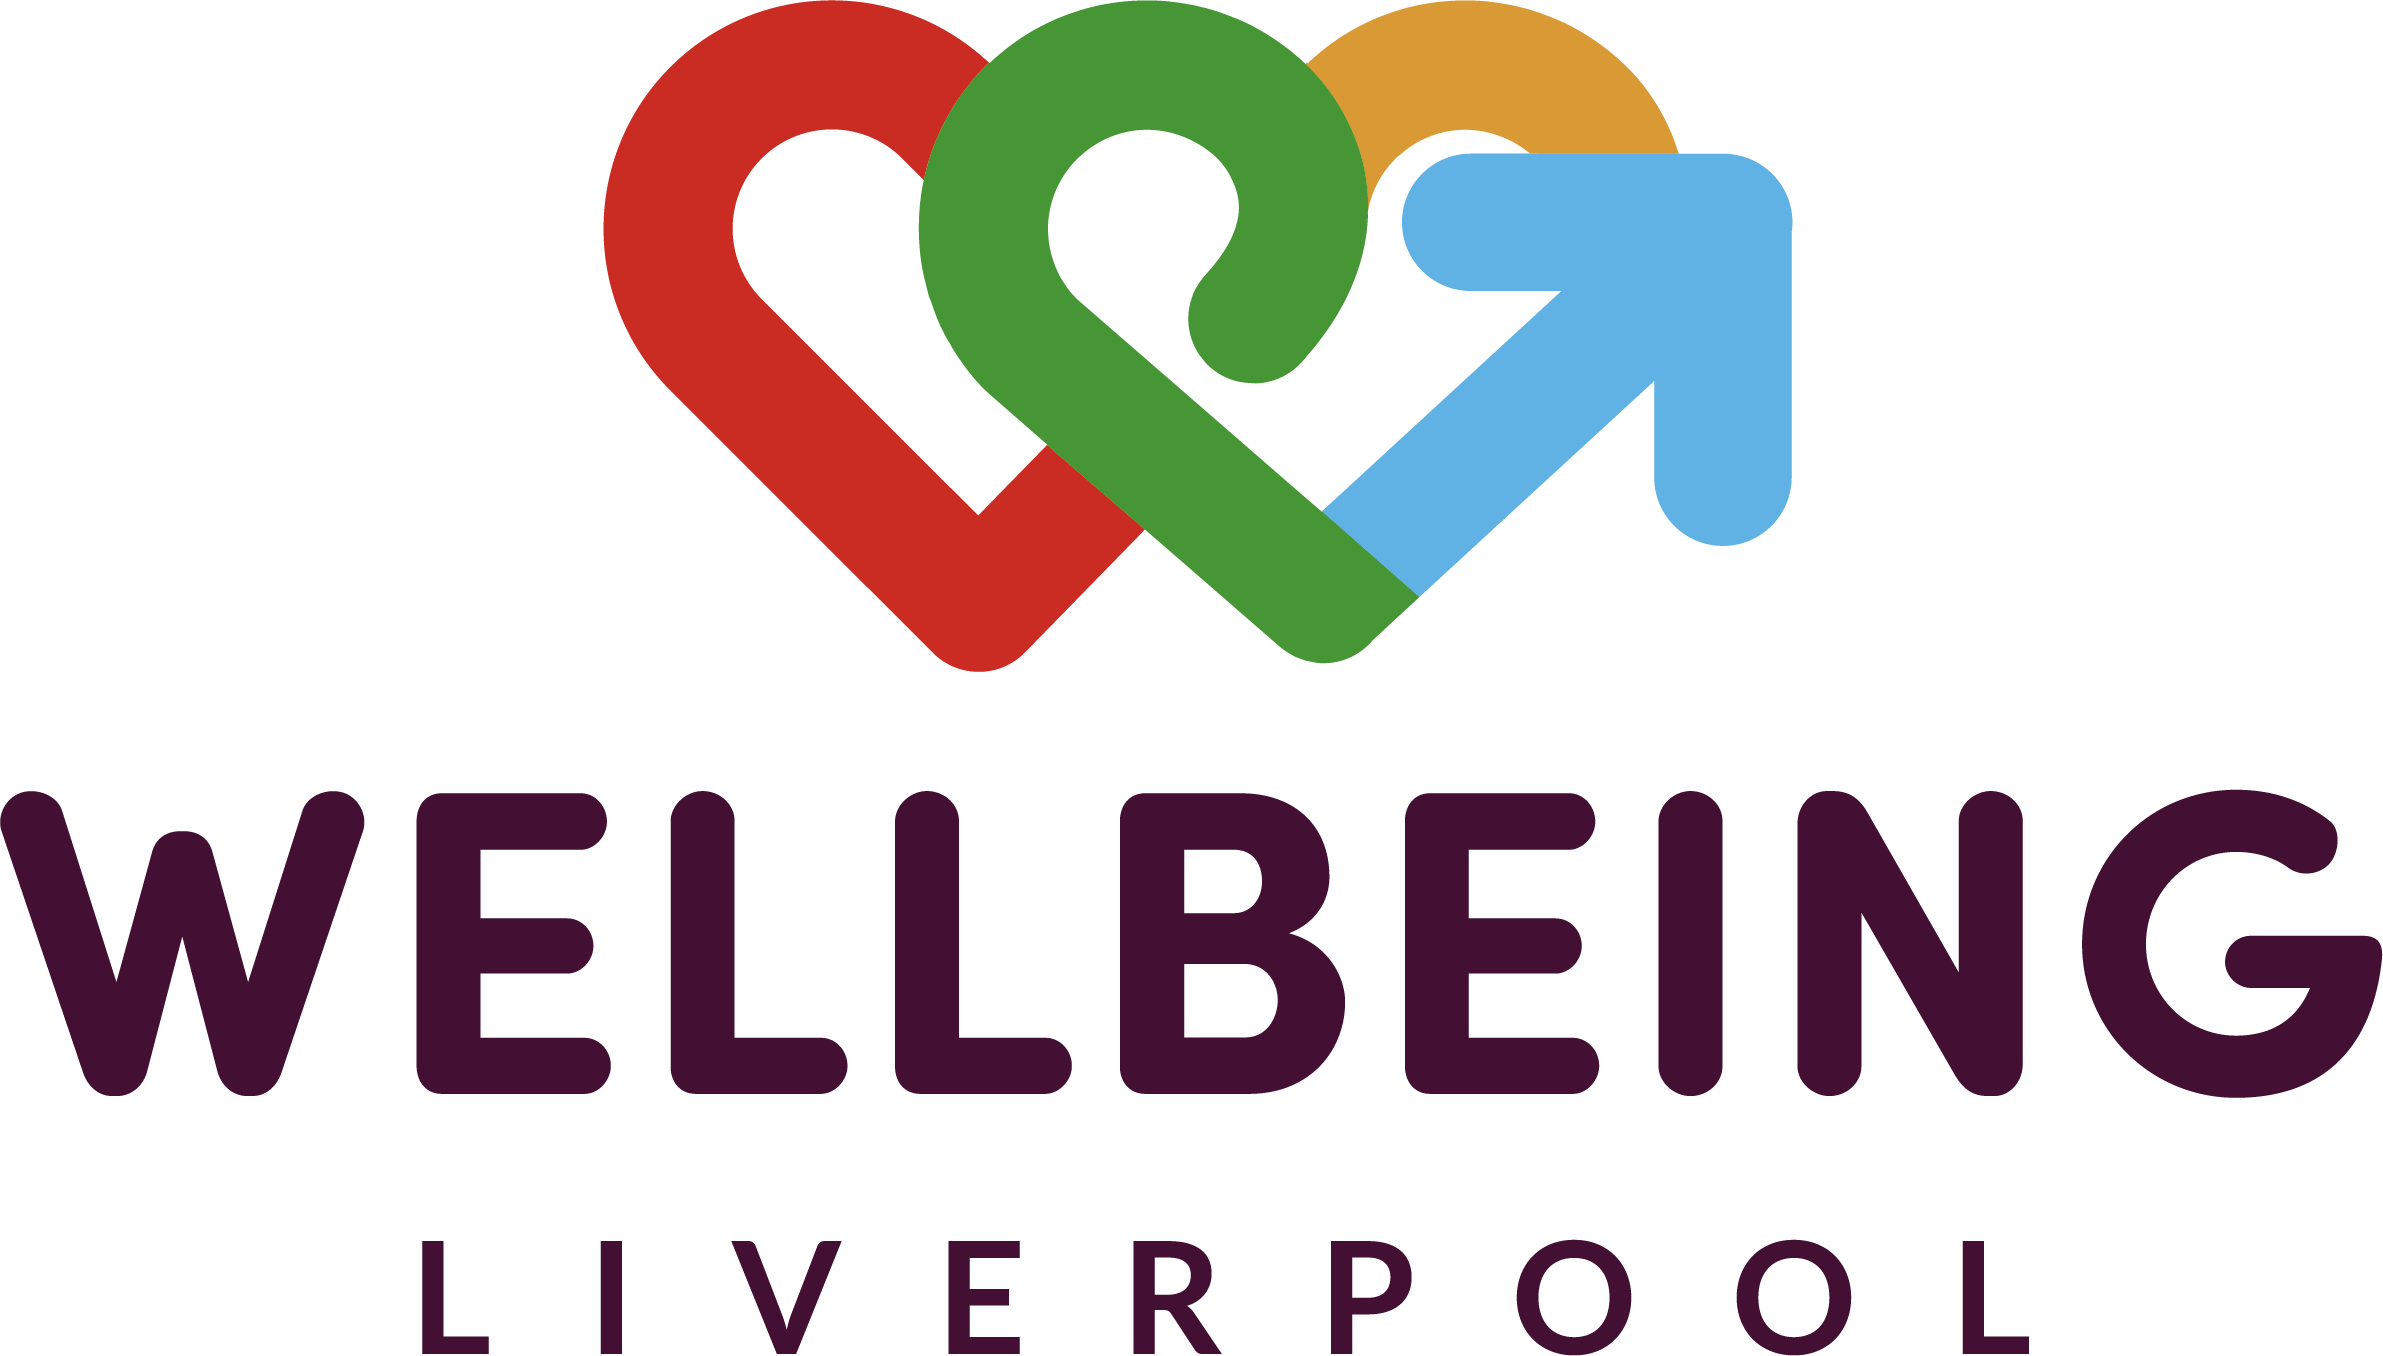 Wellbeing Liverpool